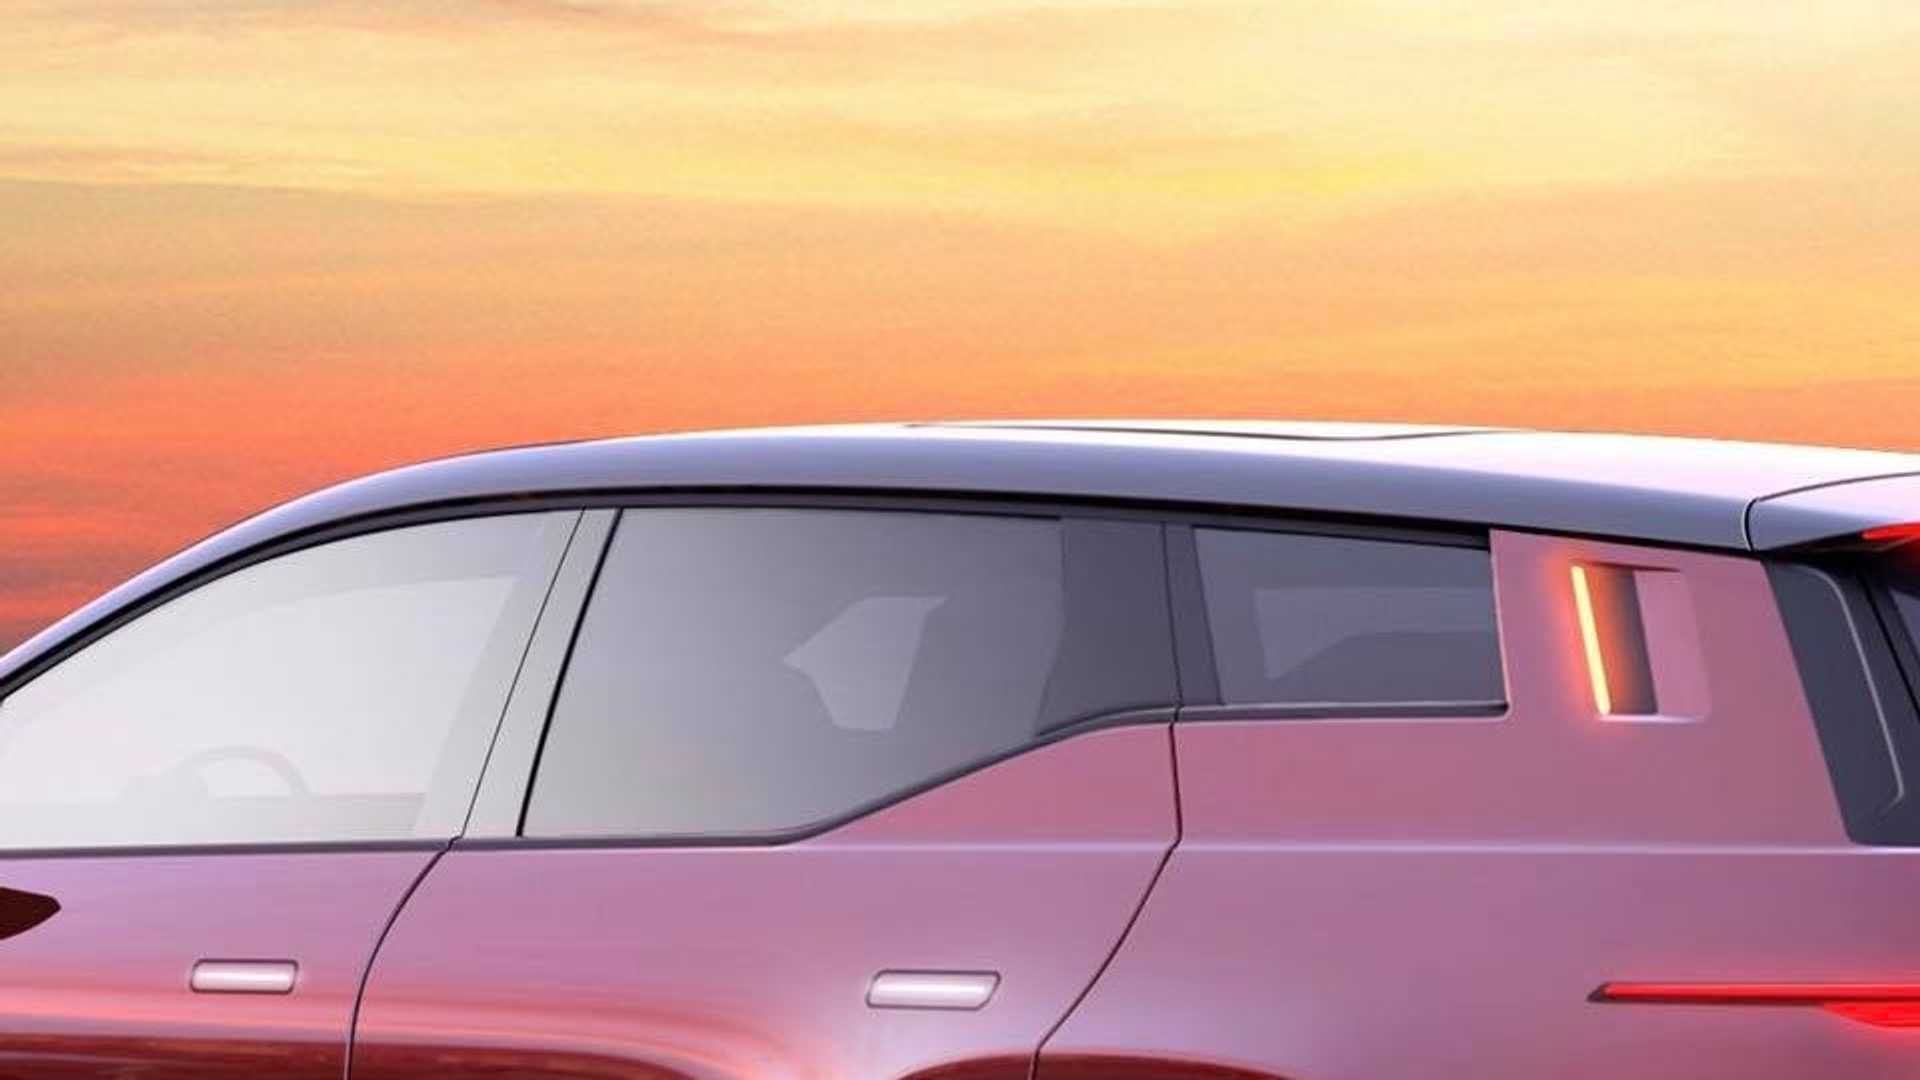 Fisker Automotive, an automobile company founded by Danish vehicle designer Henrik Fisker, has released the first teaser pic of its upcoming all-electric crossover SUV, which the company hopes will provide a worthy alternative to the Tesla Model Y